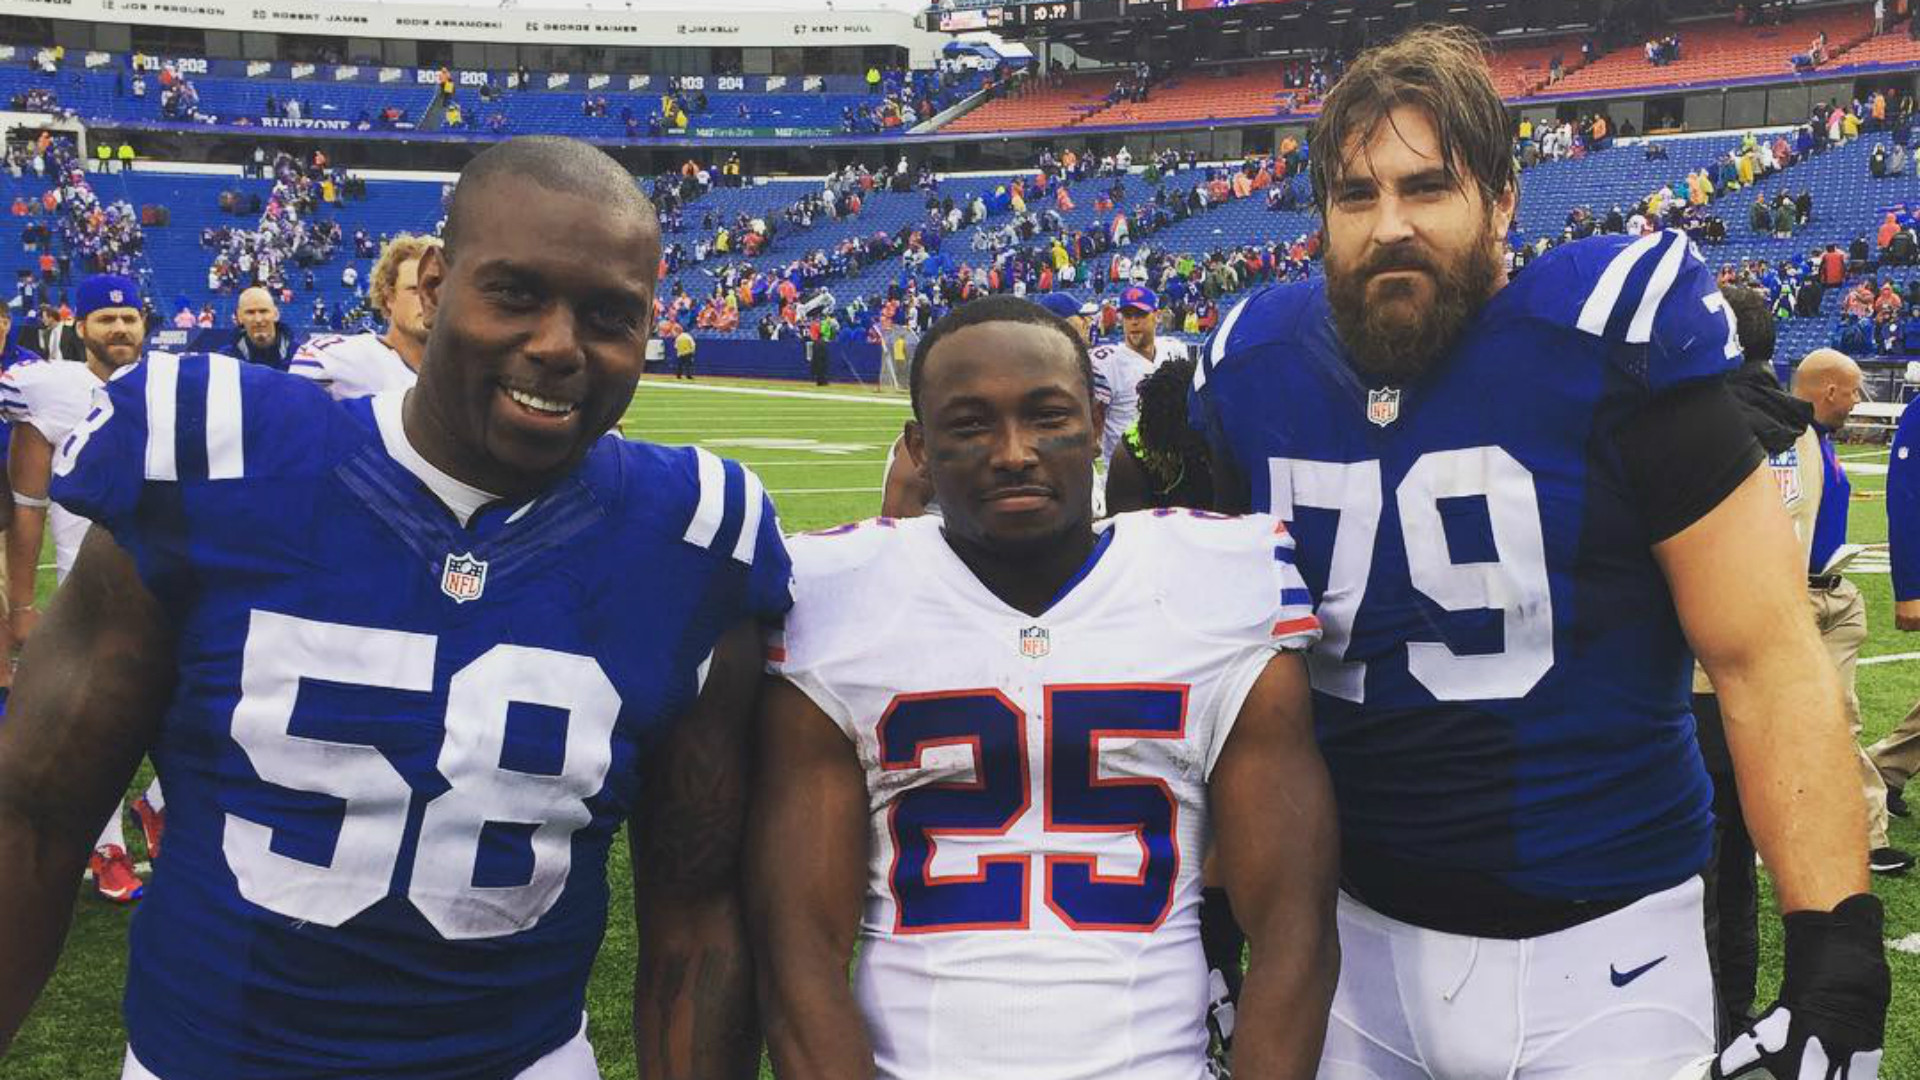 LeSean McCoy organizes 'Chip Kelly rejects' photo | NFL | Sporting News